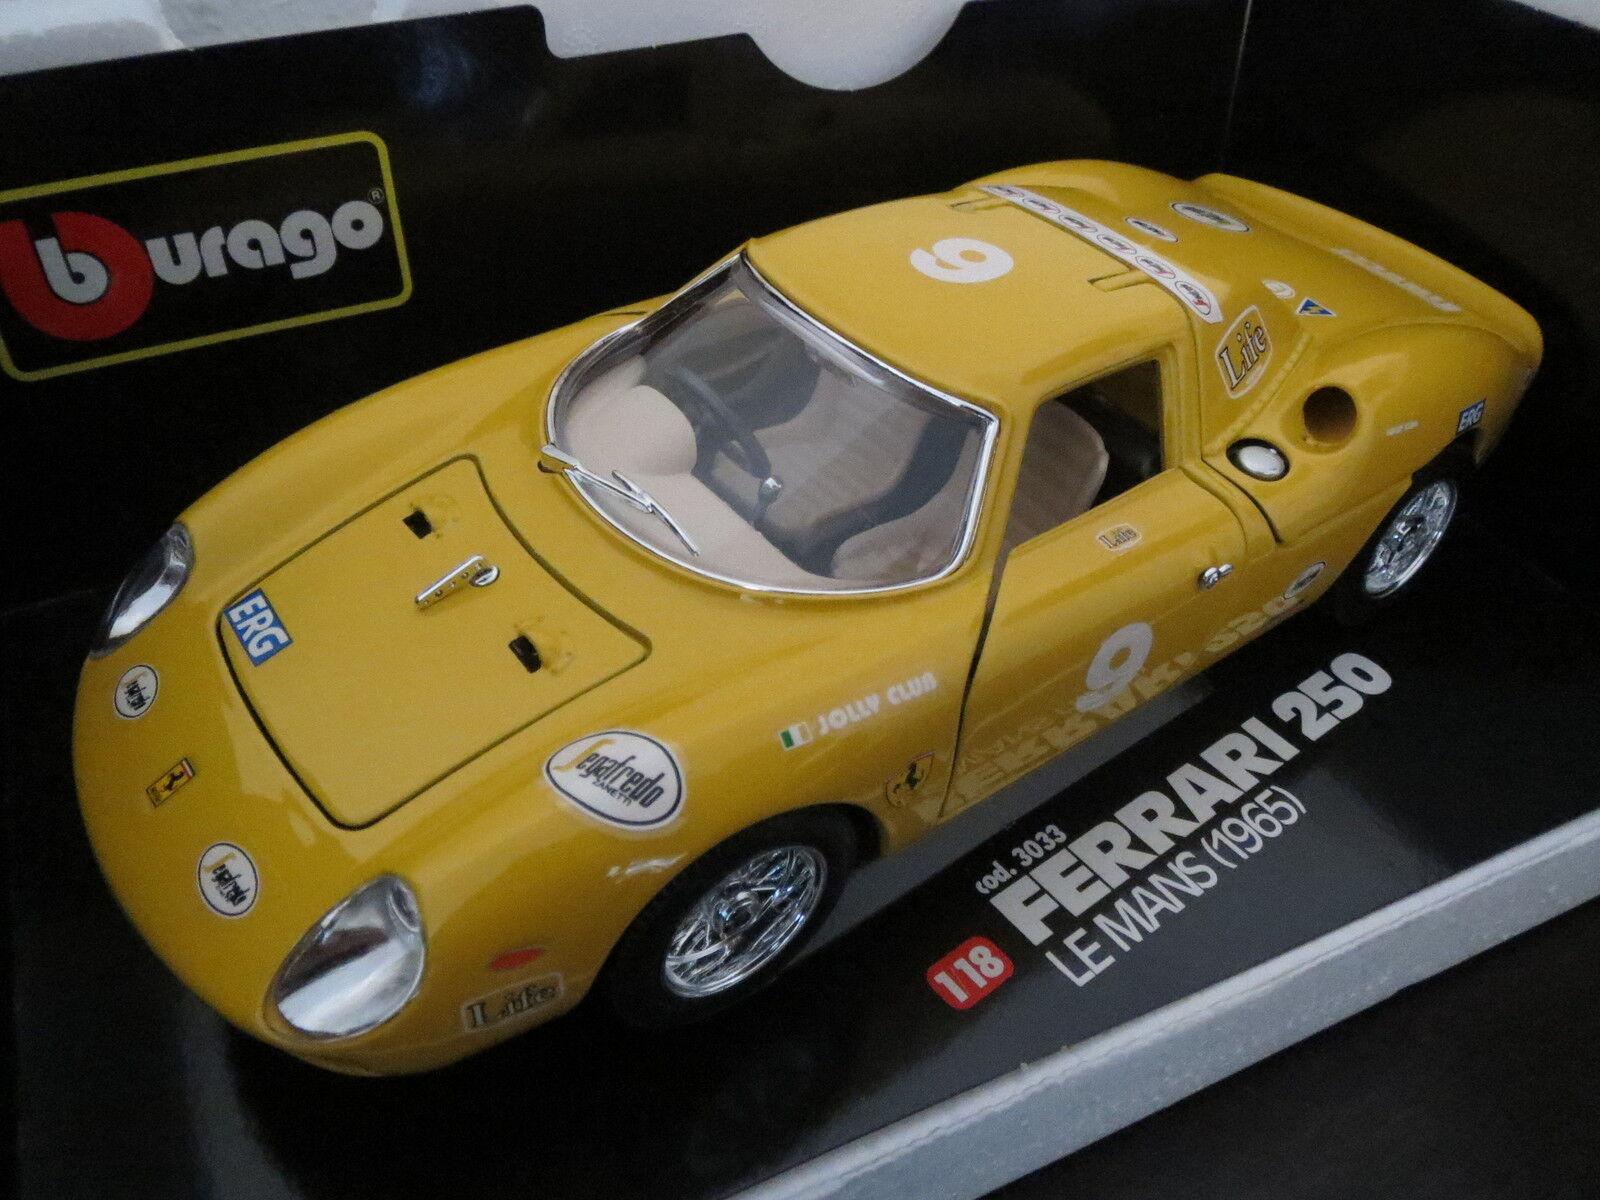 La Mini Miniera Ferrari 250lm (1965) Jolly Club, jaune, transformation, neufs, top